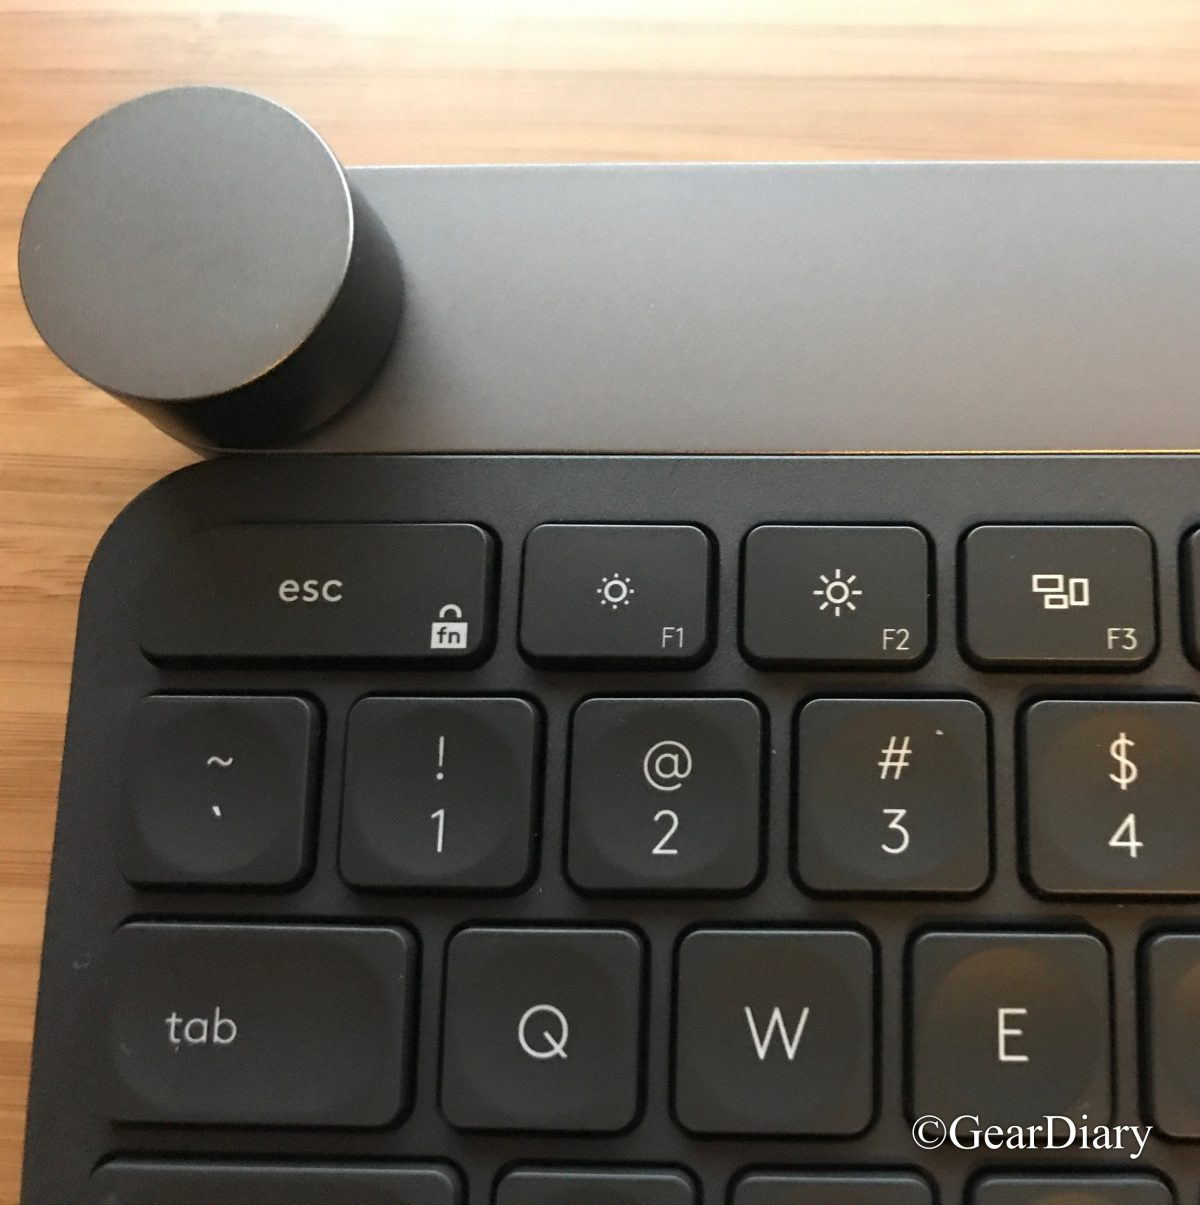 Logitech Craft Keyboard Review Next Gen You Can Pre Order Wireless Touch K400 Plus White Key 1 Today